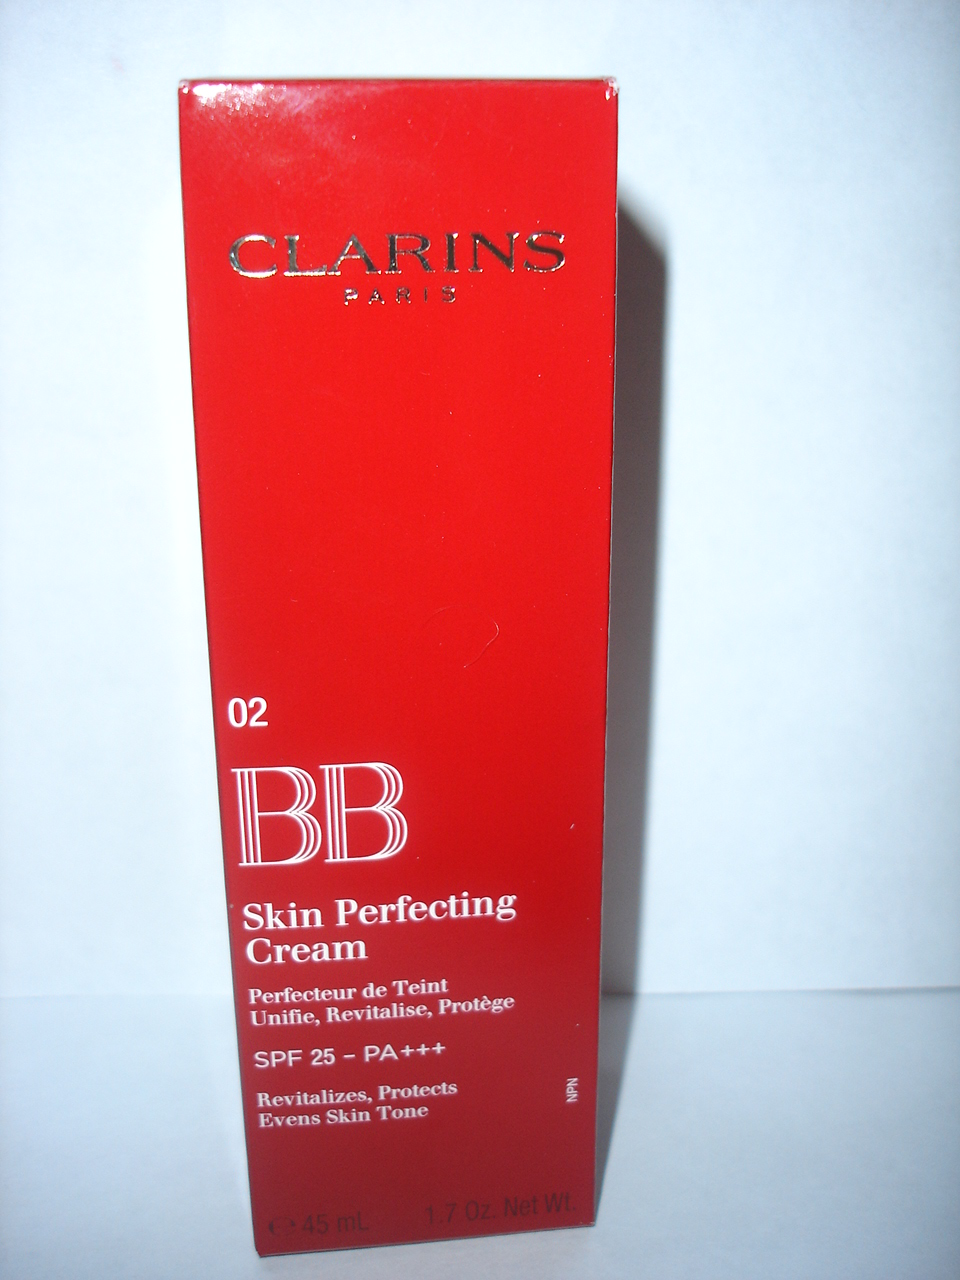 clarins bb skin perfecting cream spf 25 mybeautyjournal. Black Bedroom Furniture Sets. Home Design Ideas